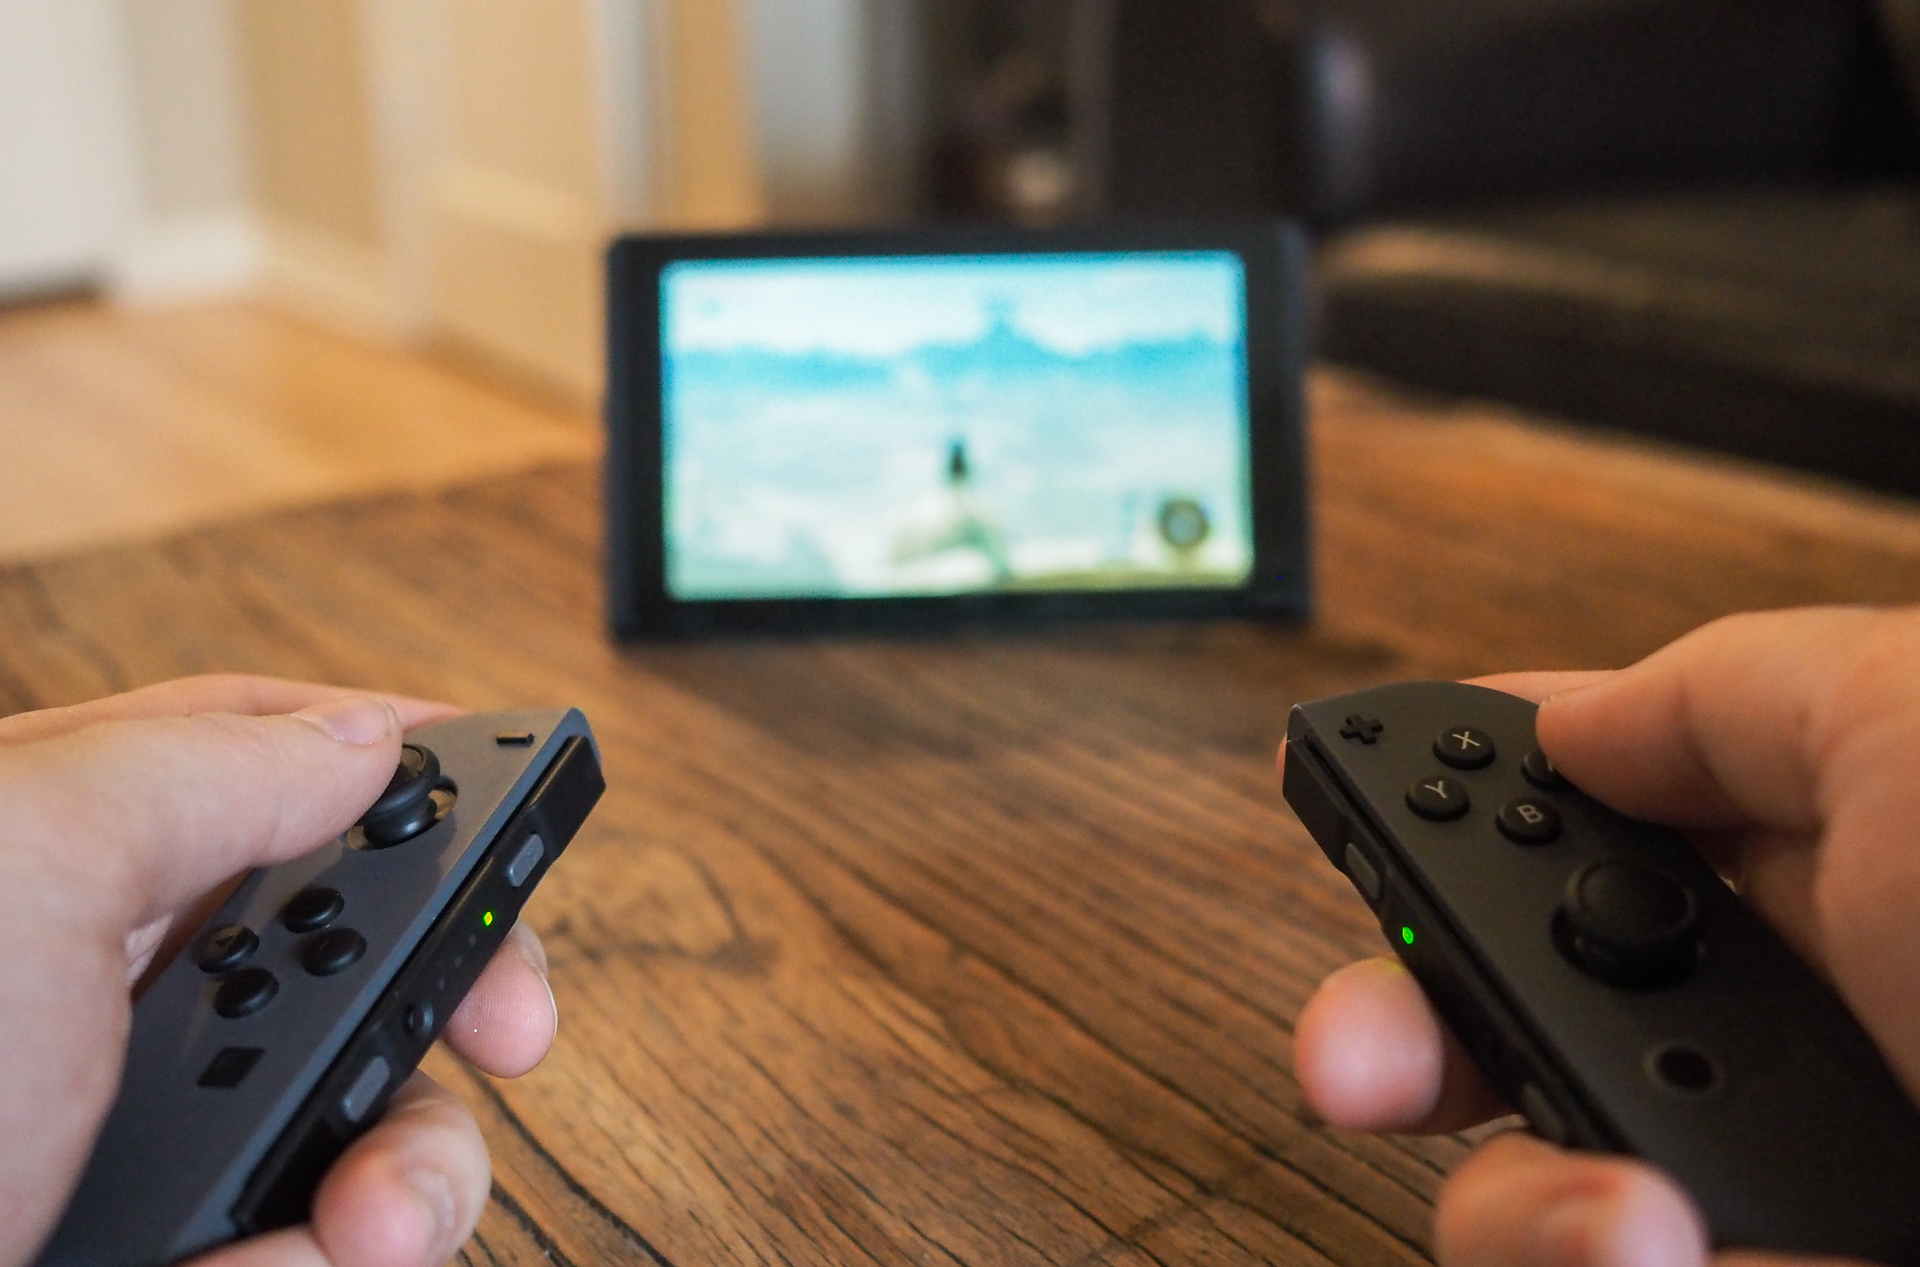 Hackers have found a way to jailbreak the Nintendo Switch